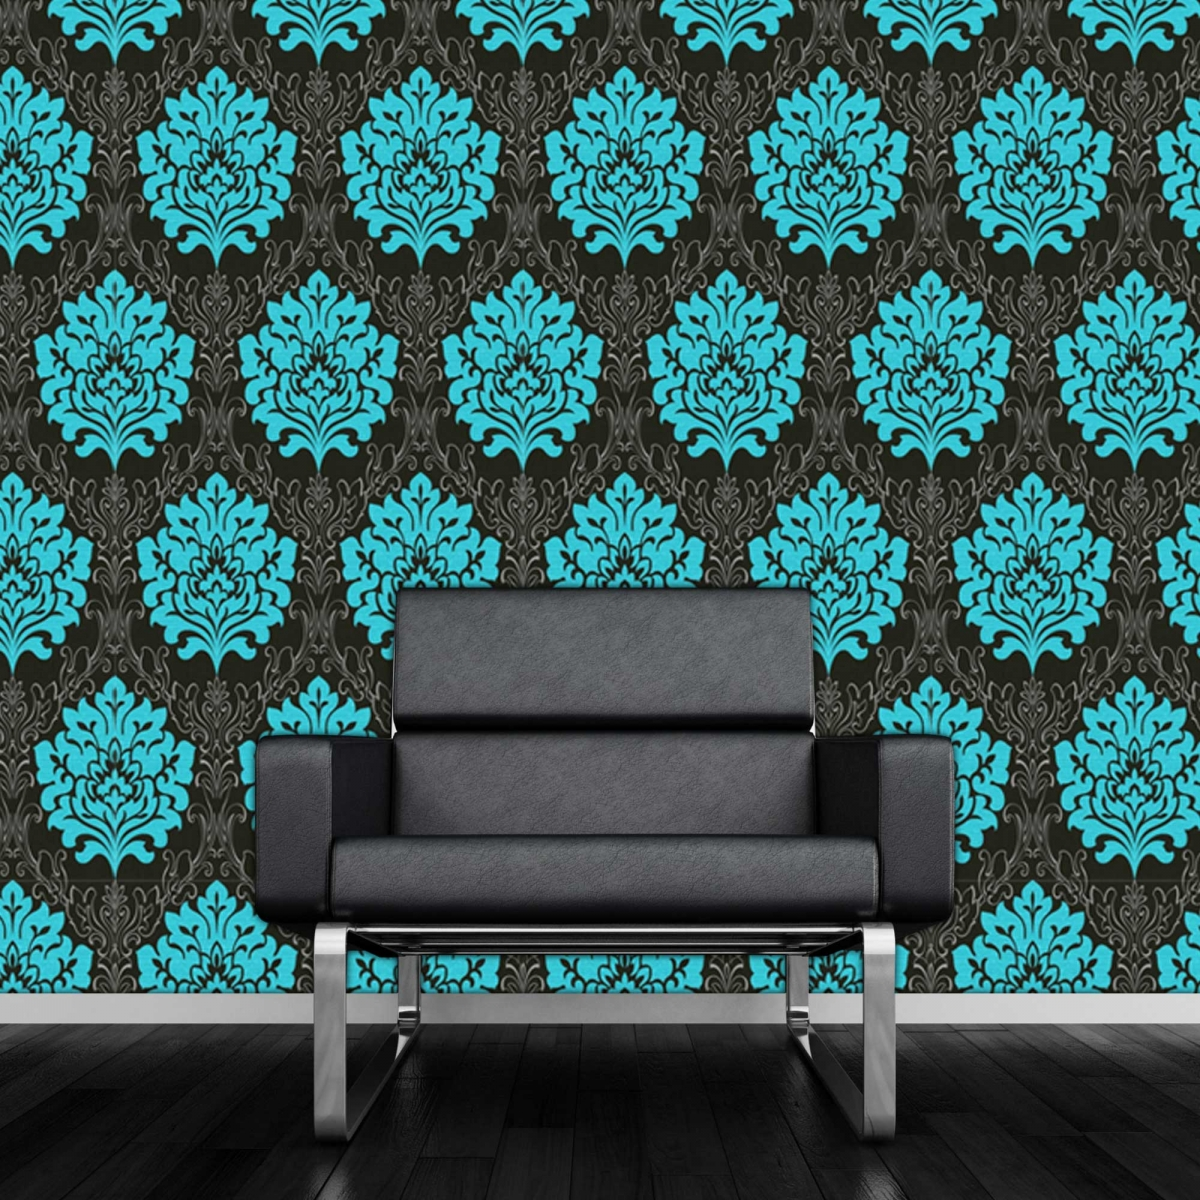 Black and teal wallpaper wallpapersafari for Teal wallpaper